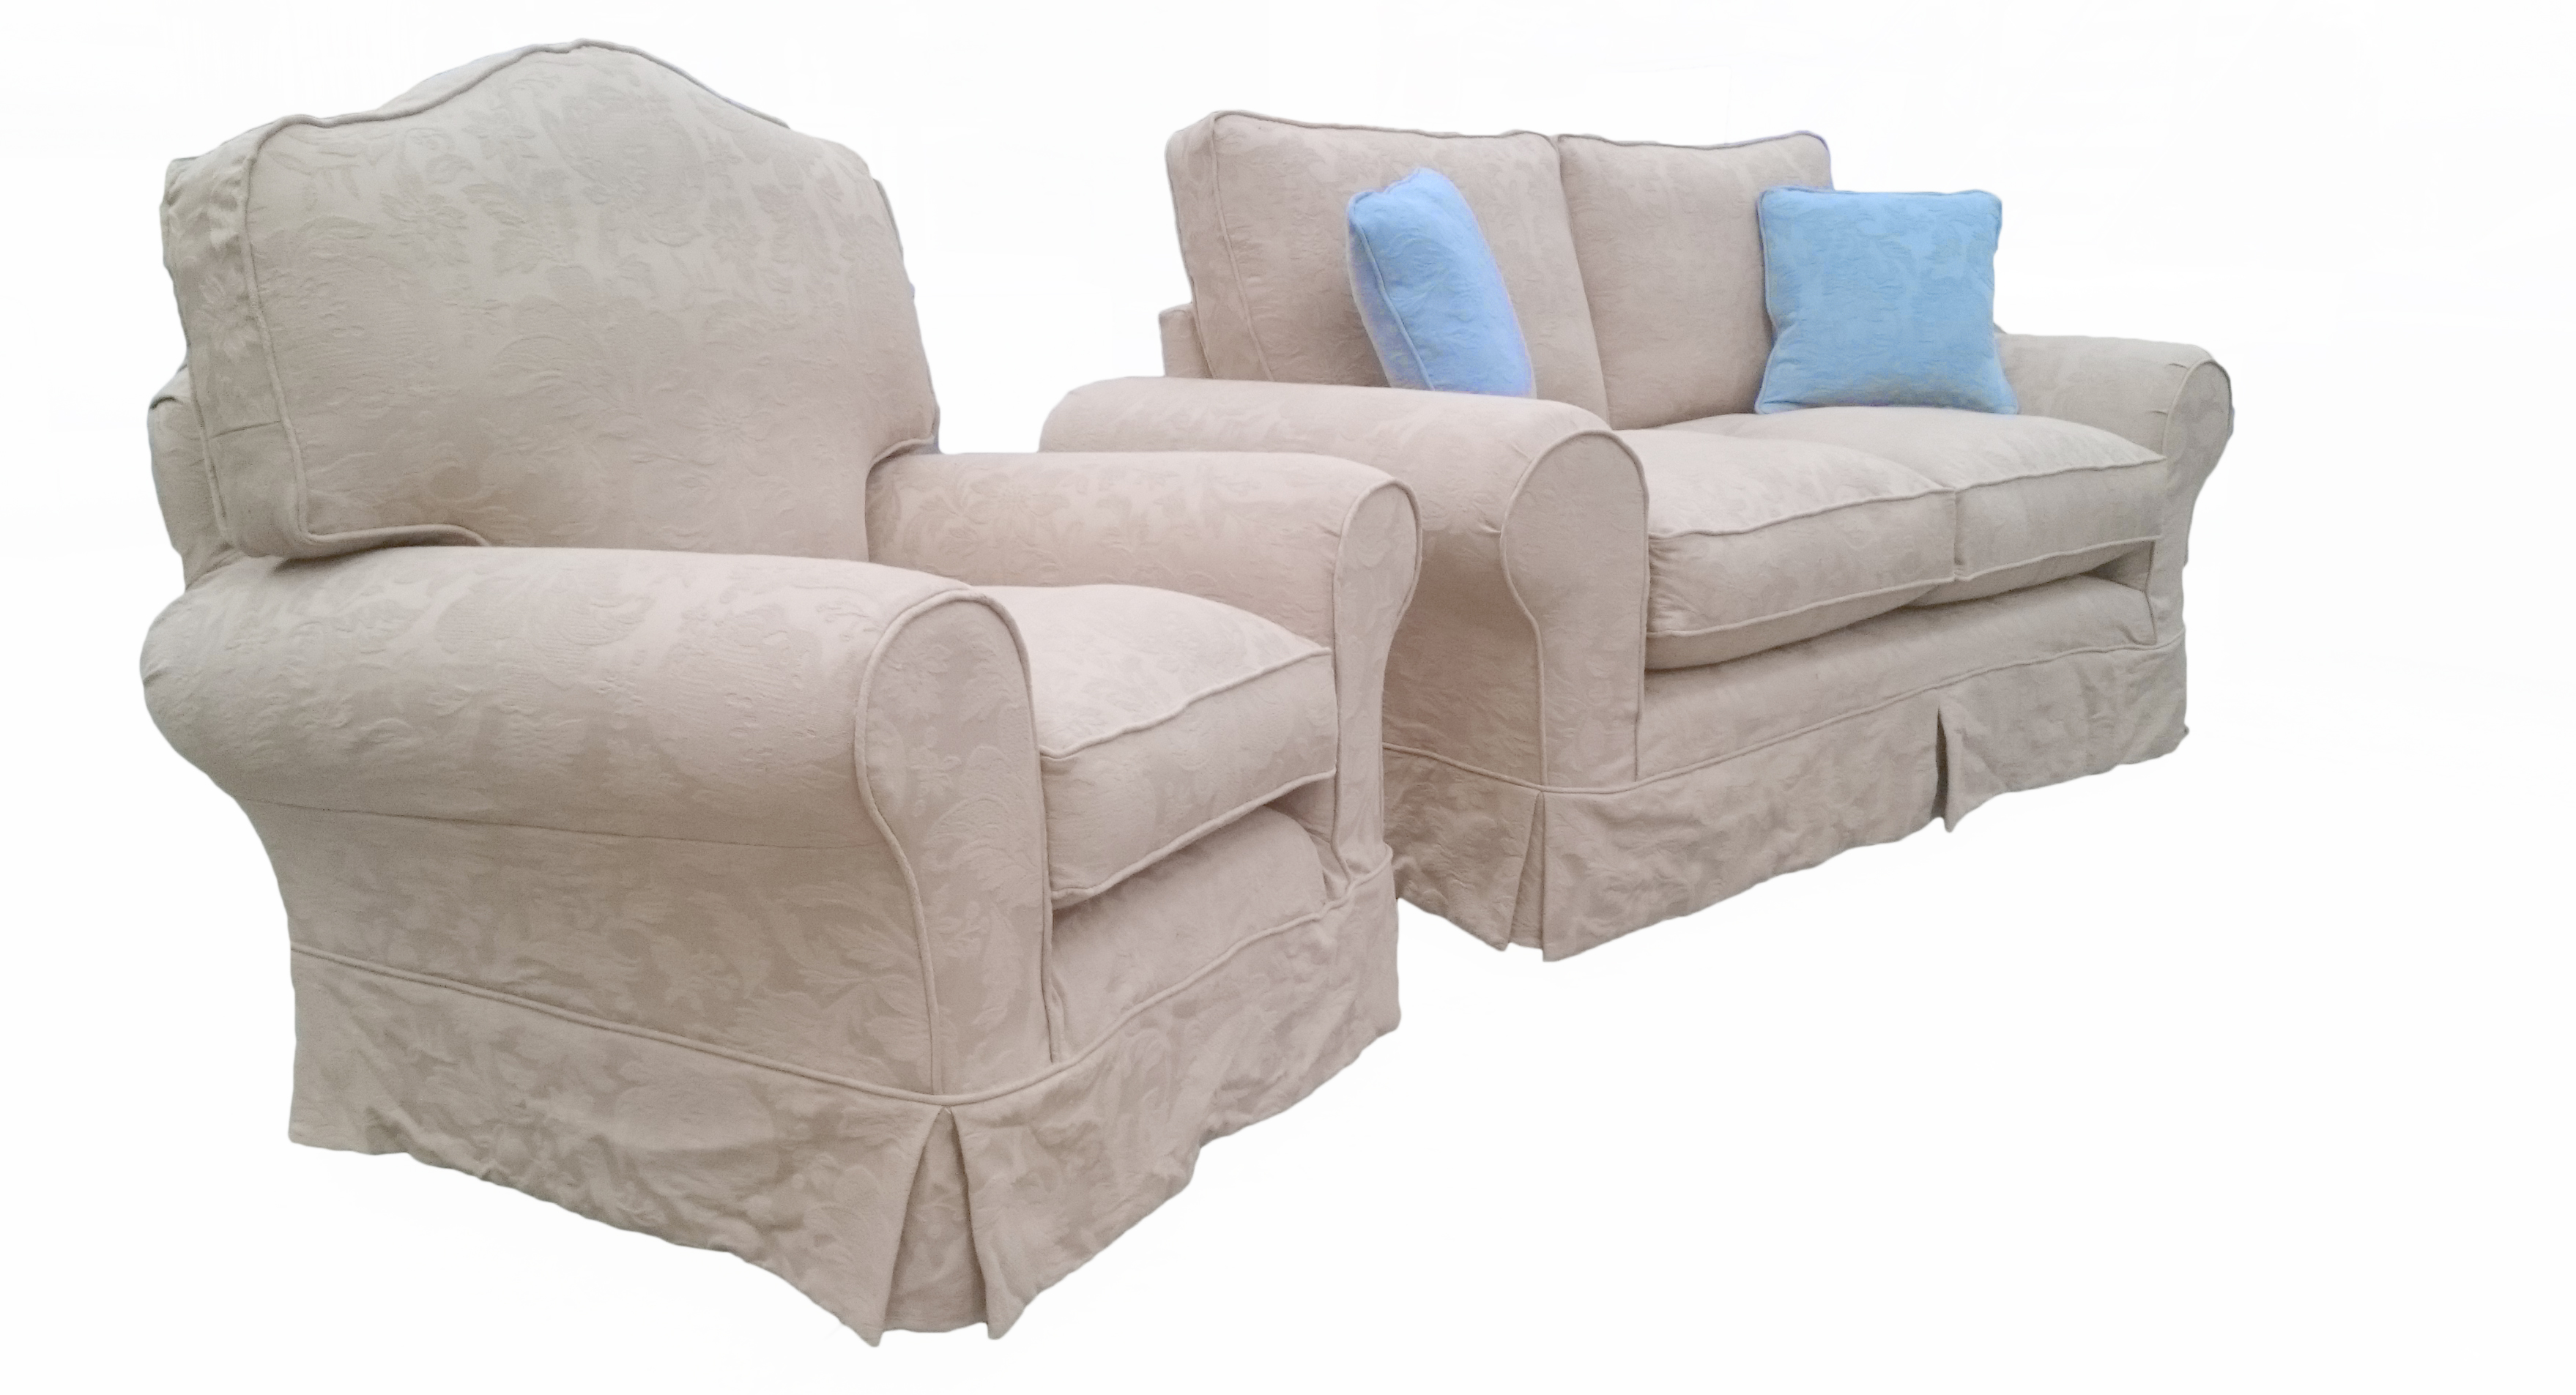 loose chair covers dublin folding with arms roisin sofas and chairs range finline furniture